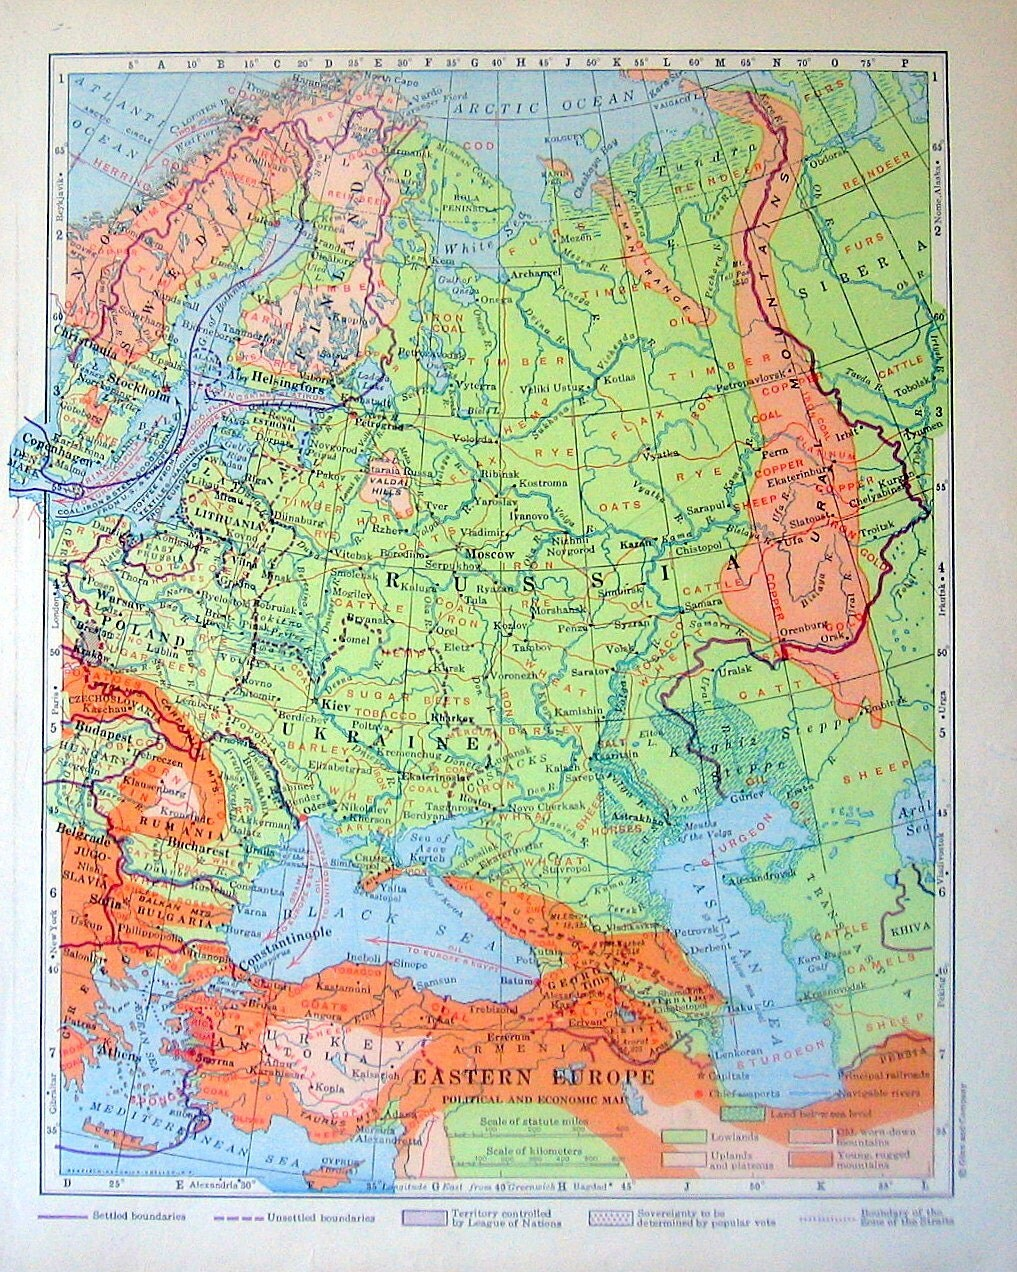 1920 Eastern Europe Political and Economic by mysunshinevintage